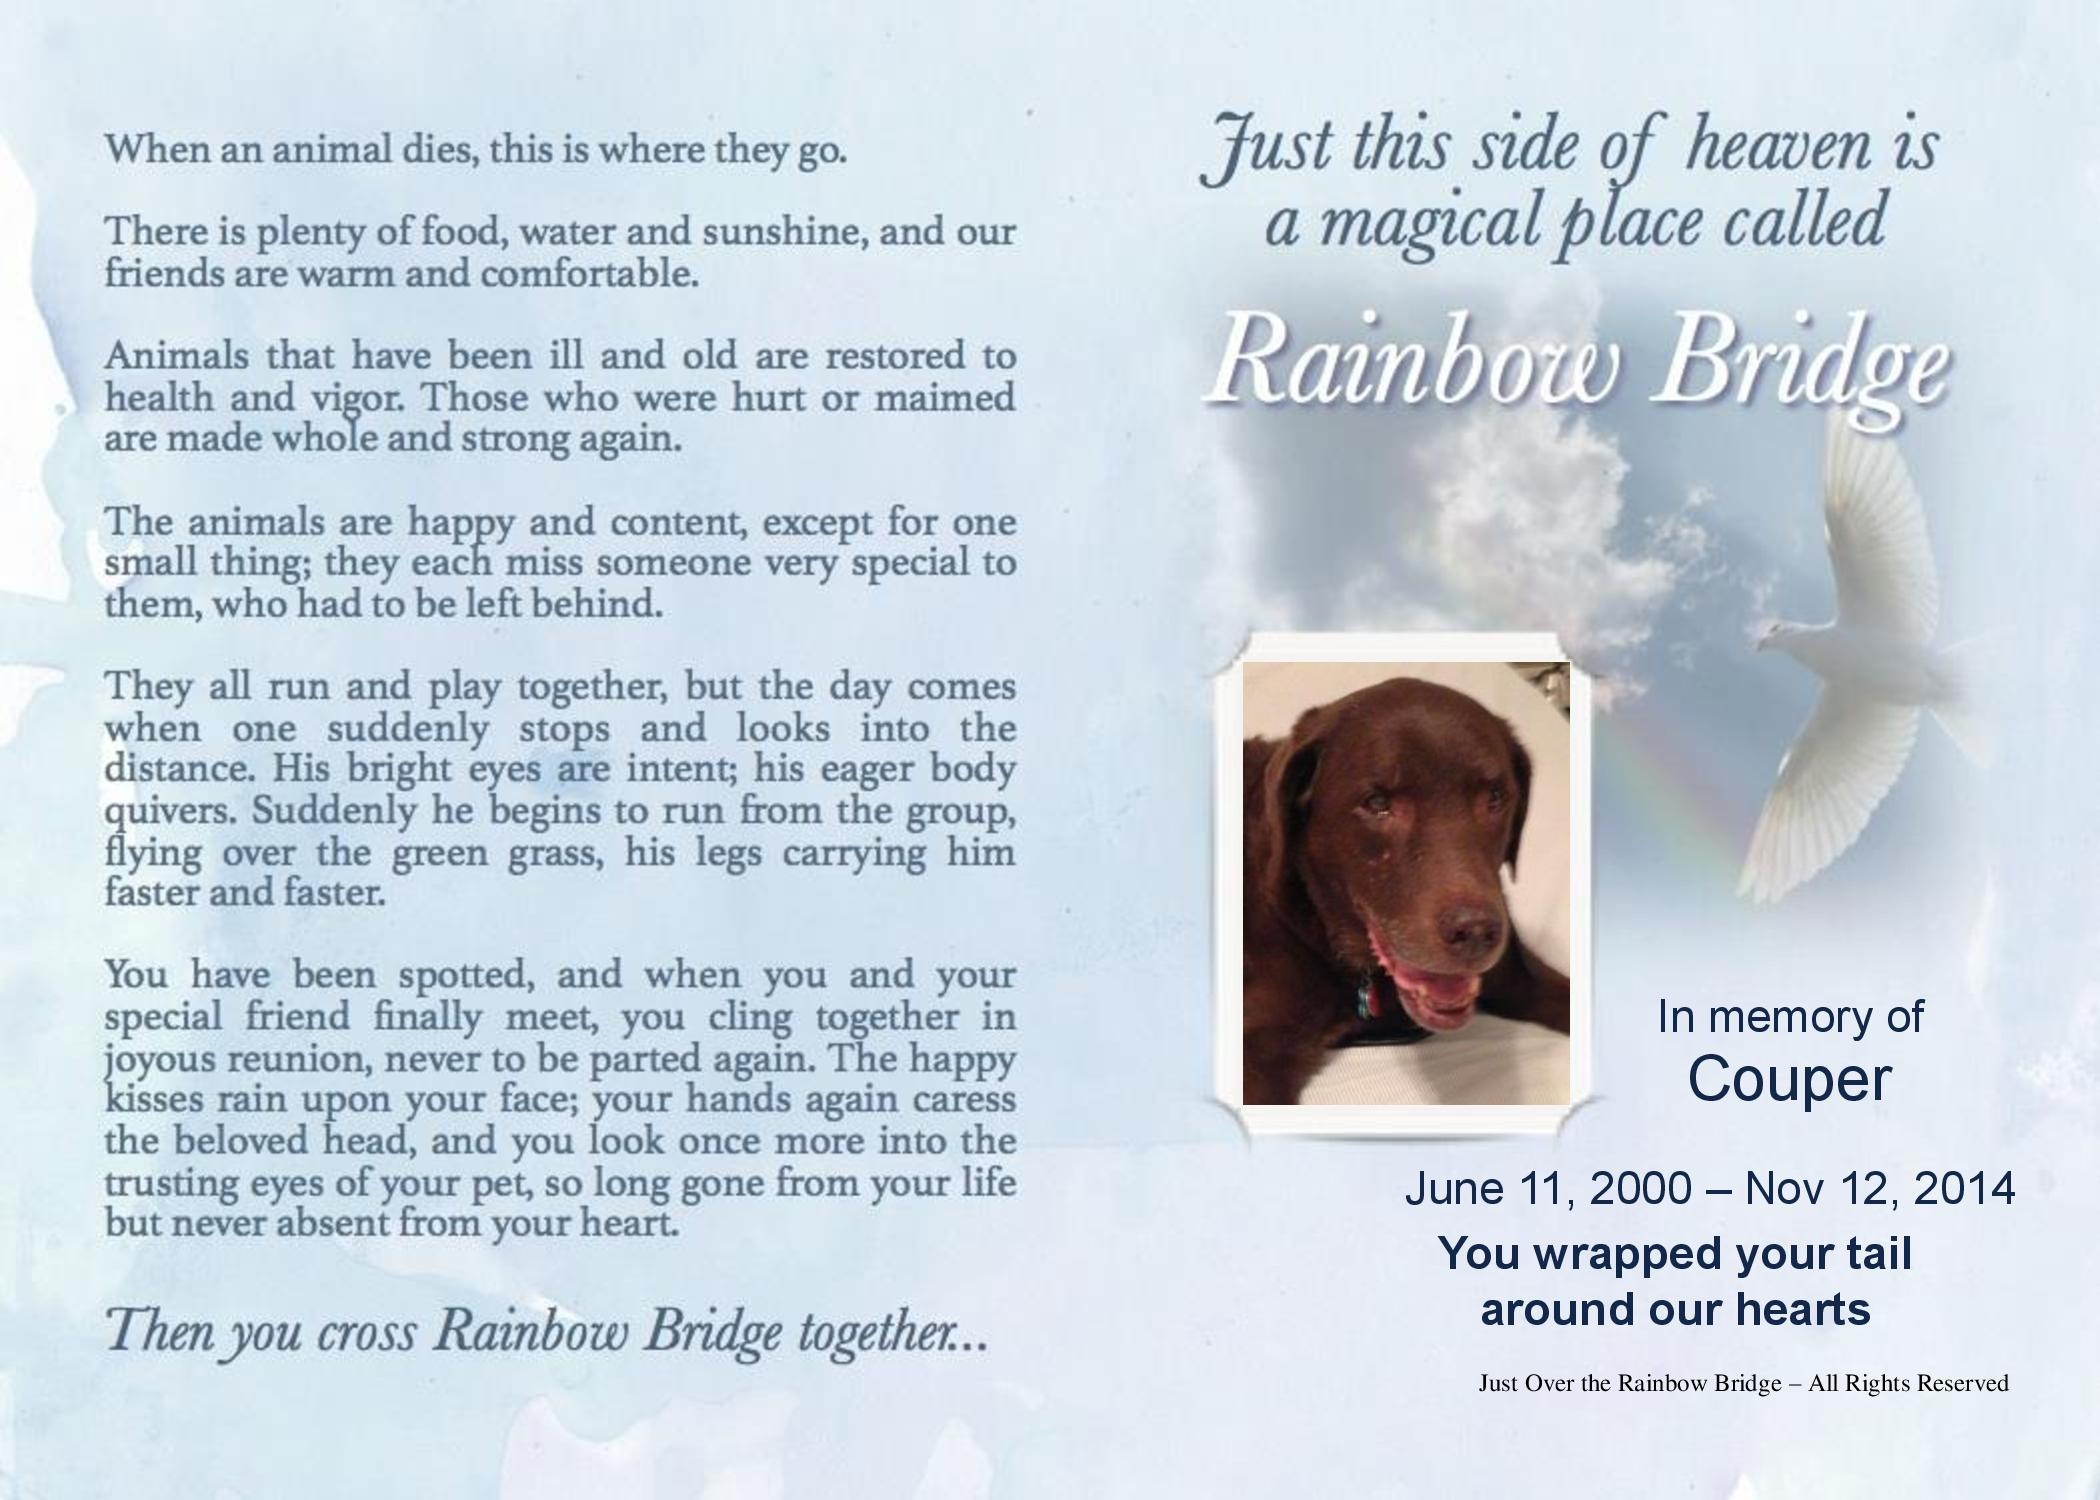 Just Over The Rainbow Bridge1-4382Memorial card vertical Couper v3-page-001.jpg452